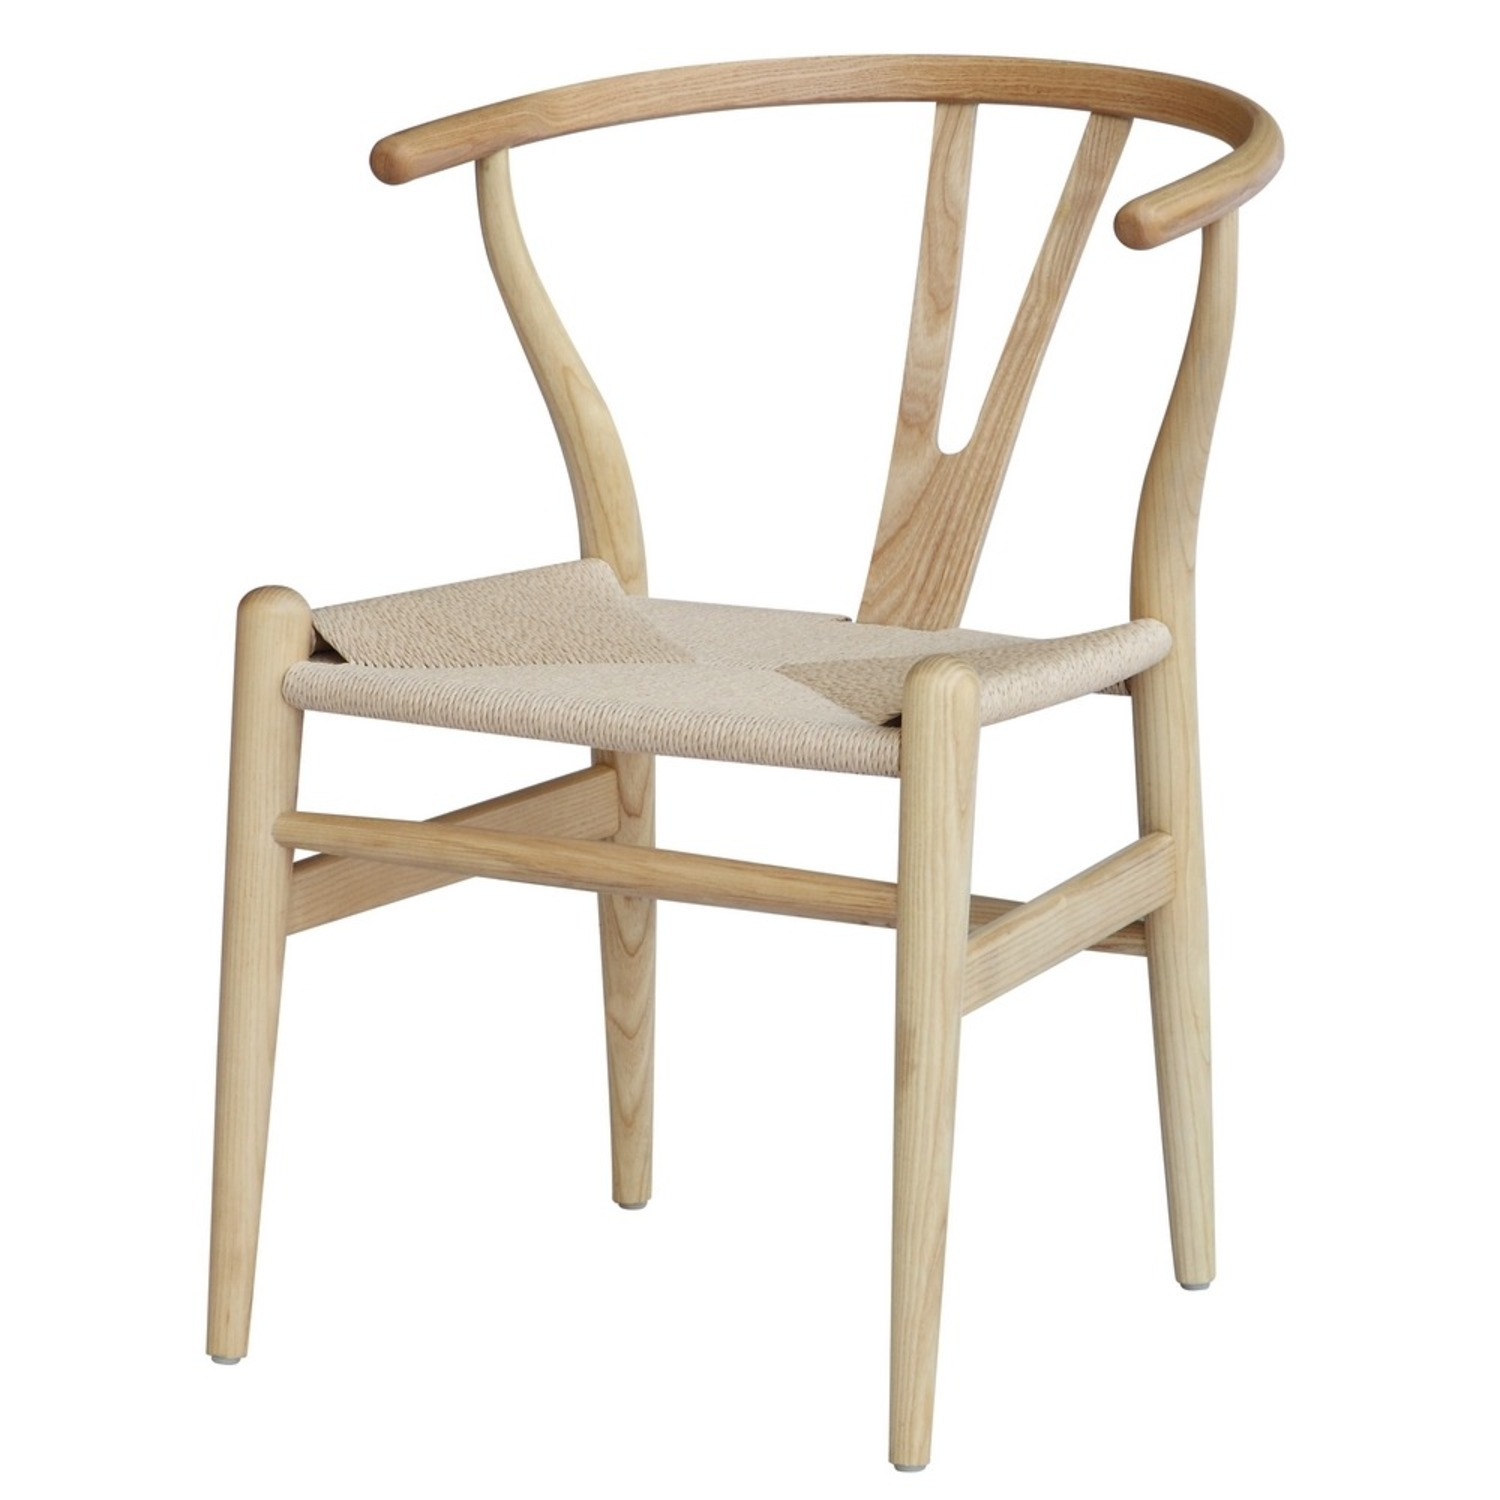 Dining Chair In Natural Frame & Natural Hemp Seat - image-4